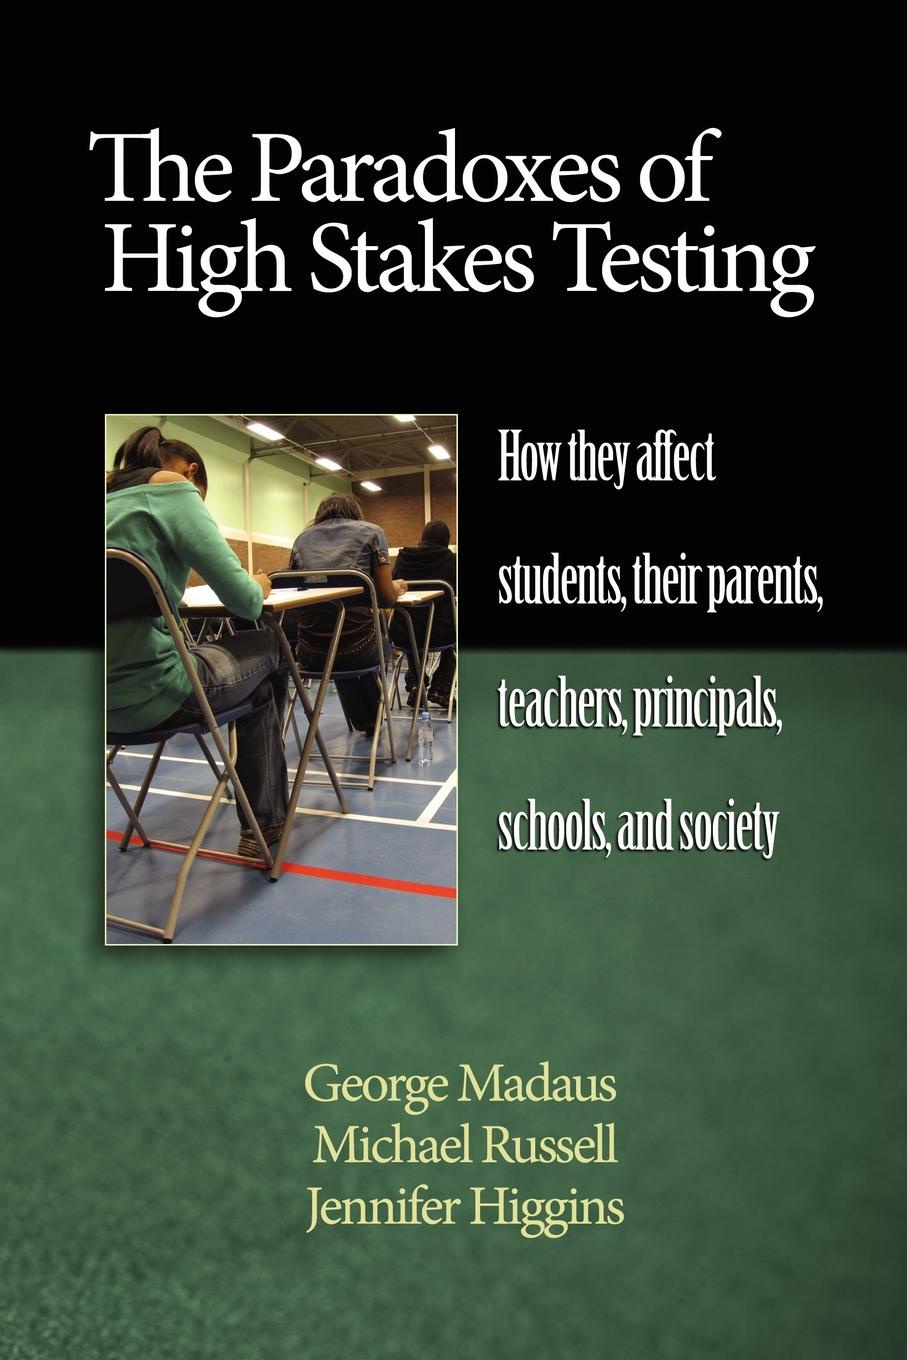 George Madaus, Michael Russell, Jennifer Higgins The Paradoxes of High Stakes Testing. How They Affect Students, Their Parents, Teachers, Principals, Schools, and Society (PB) mohammad salehi validation of a high stakes test